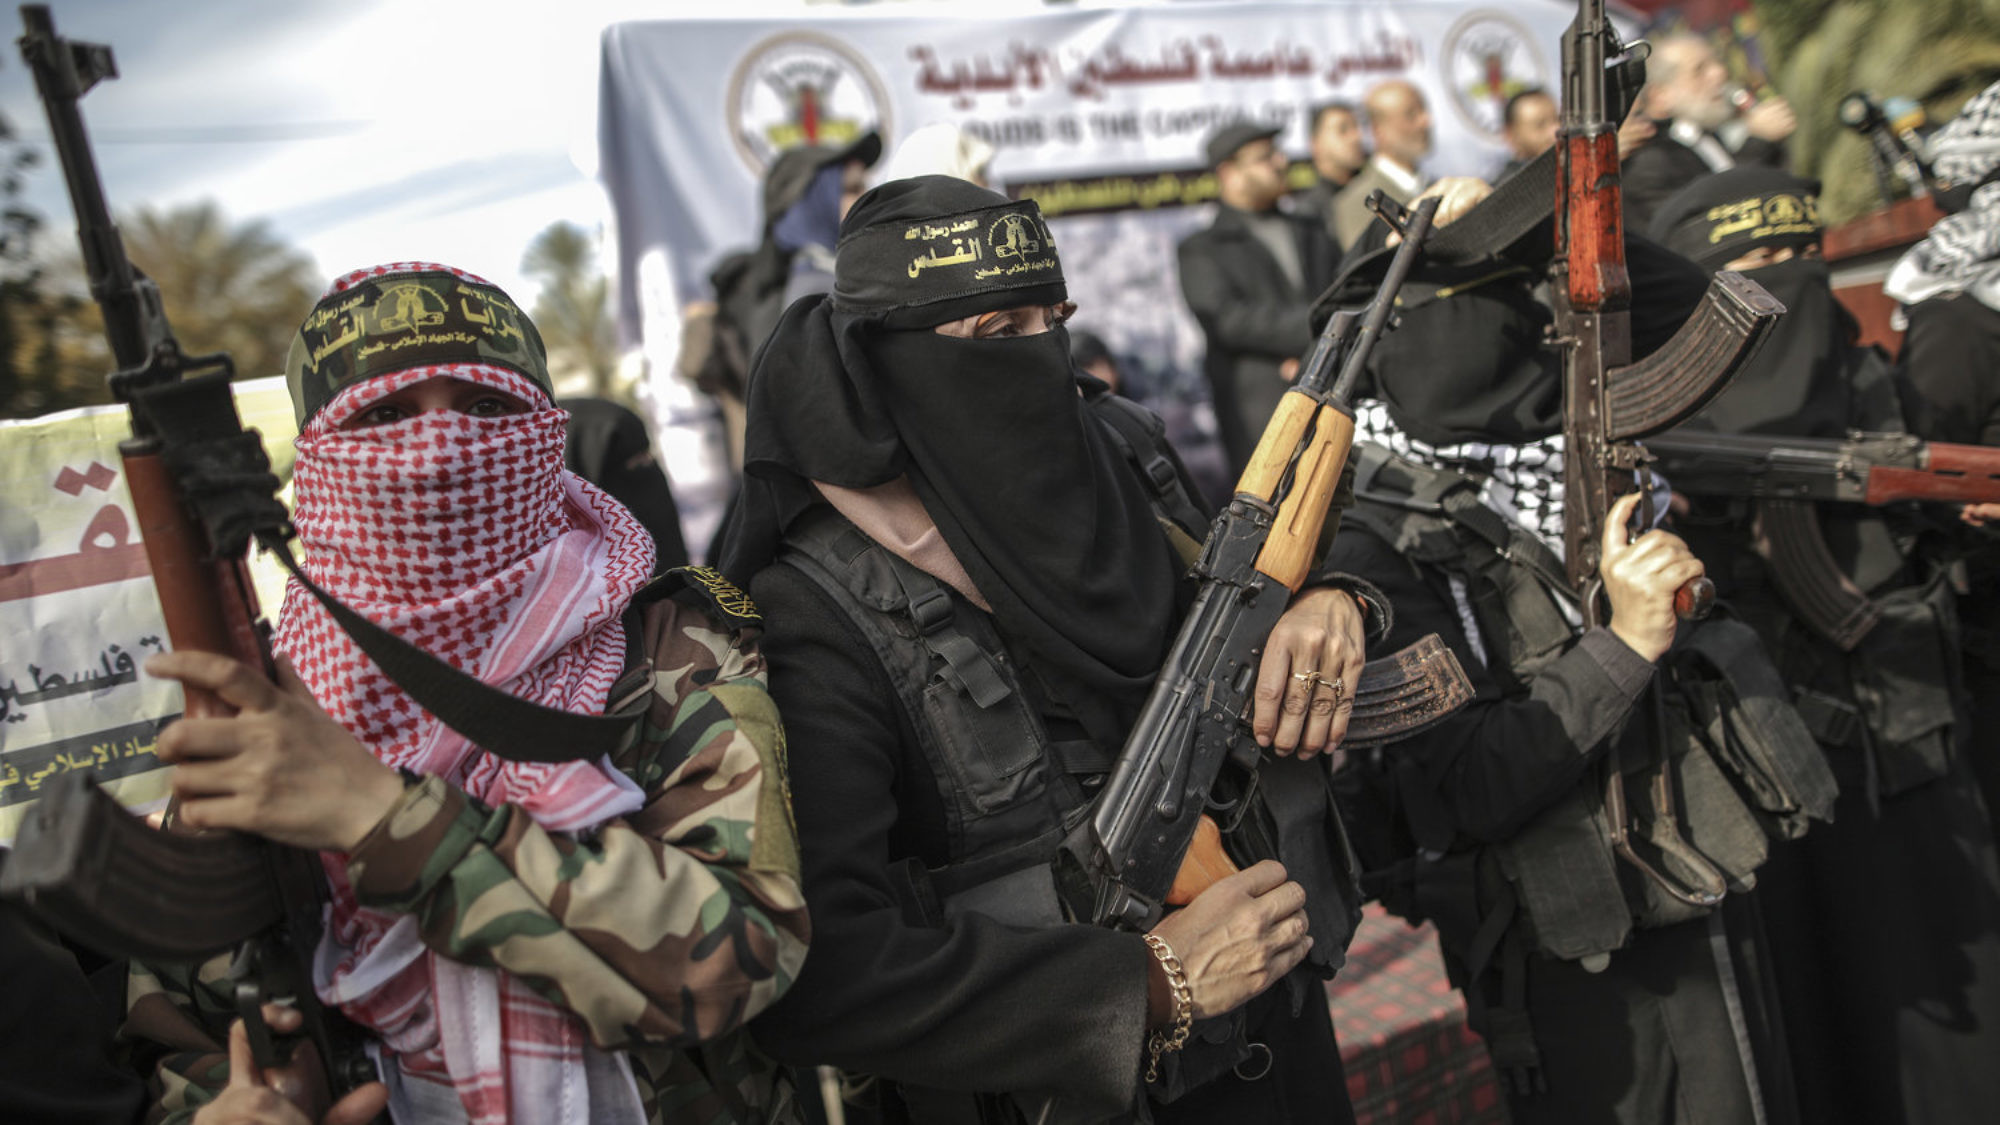 Hamas and Islamic Jihad leaders discuss resistance project